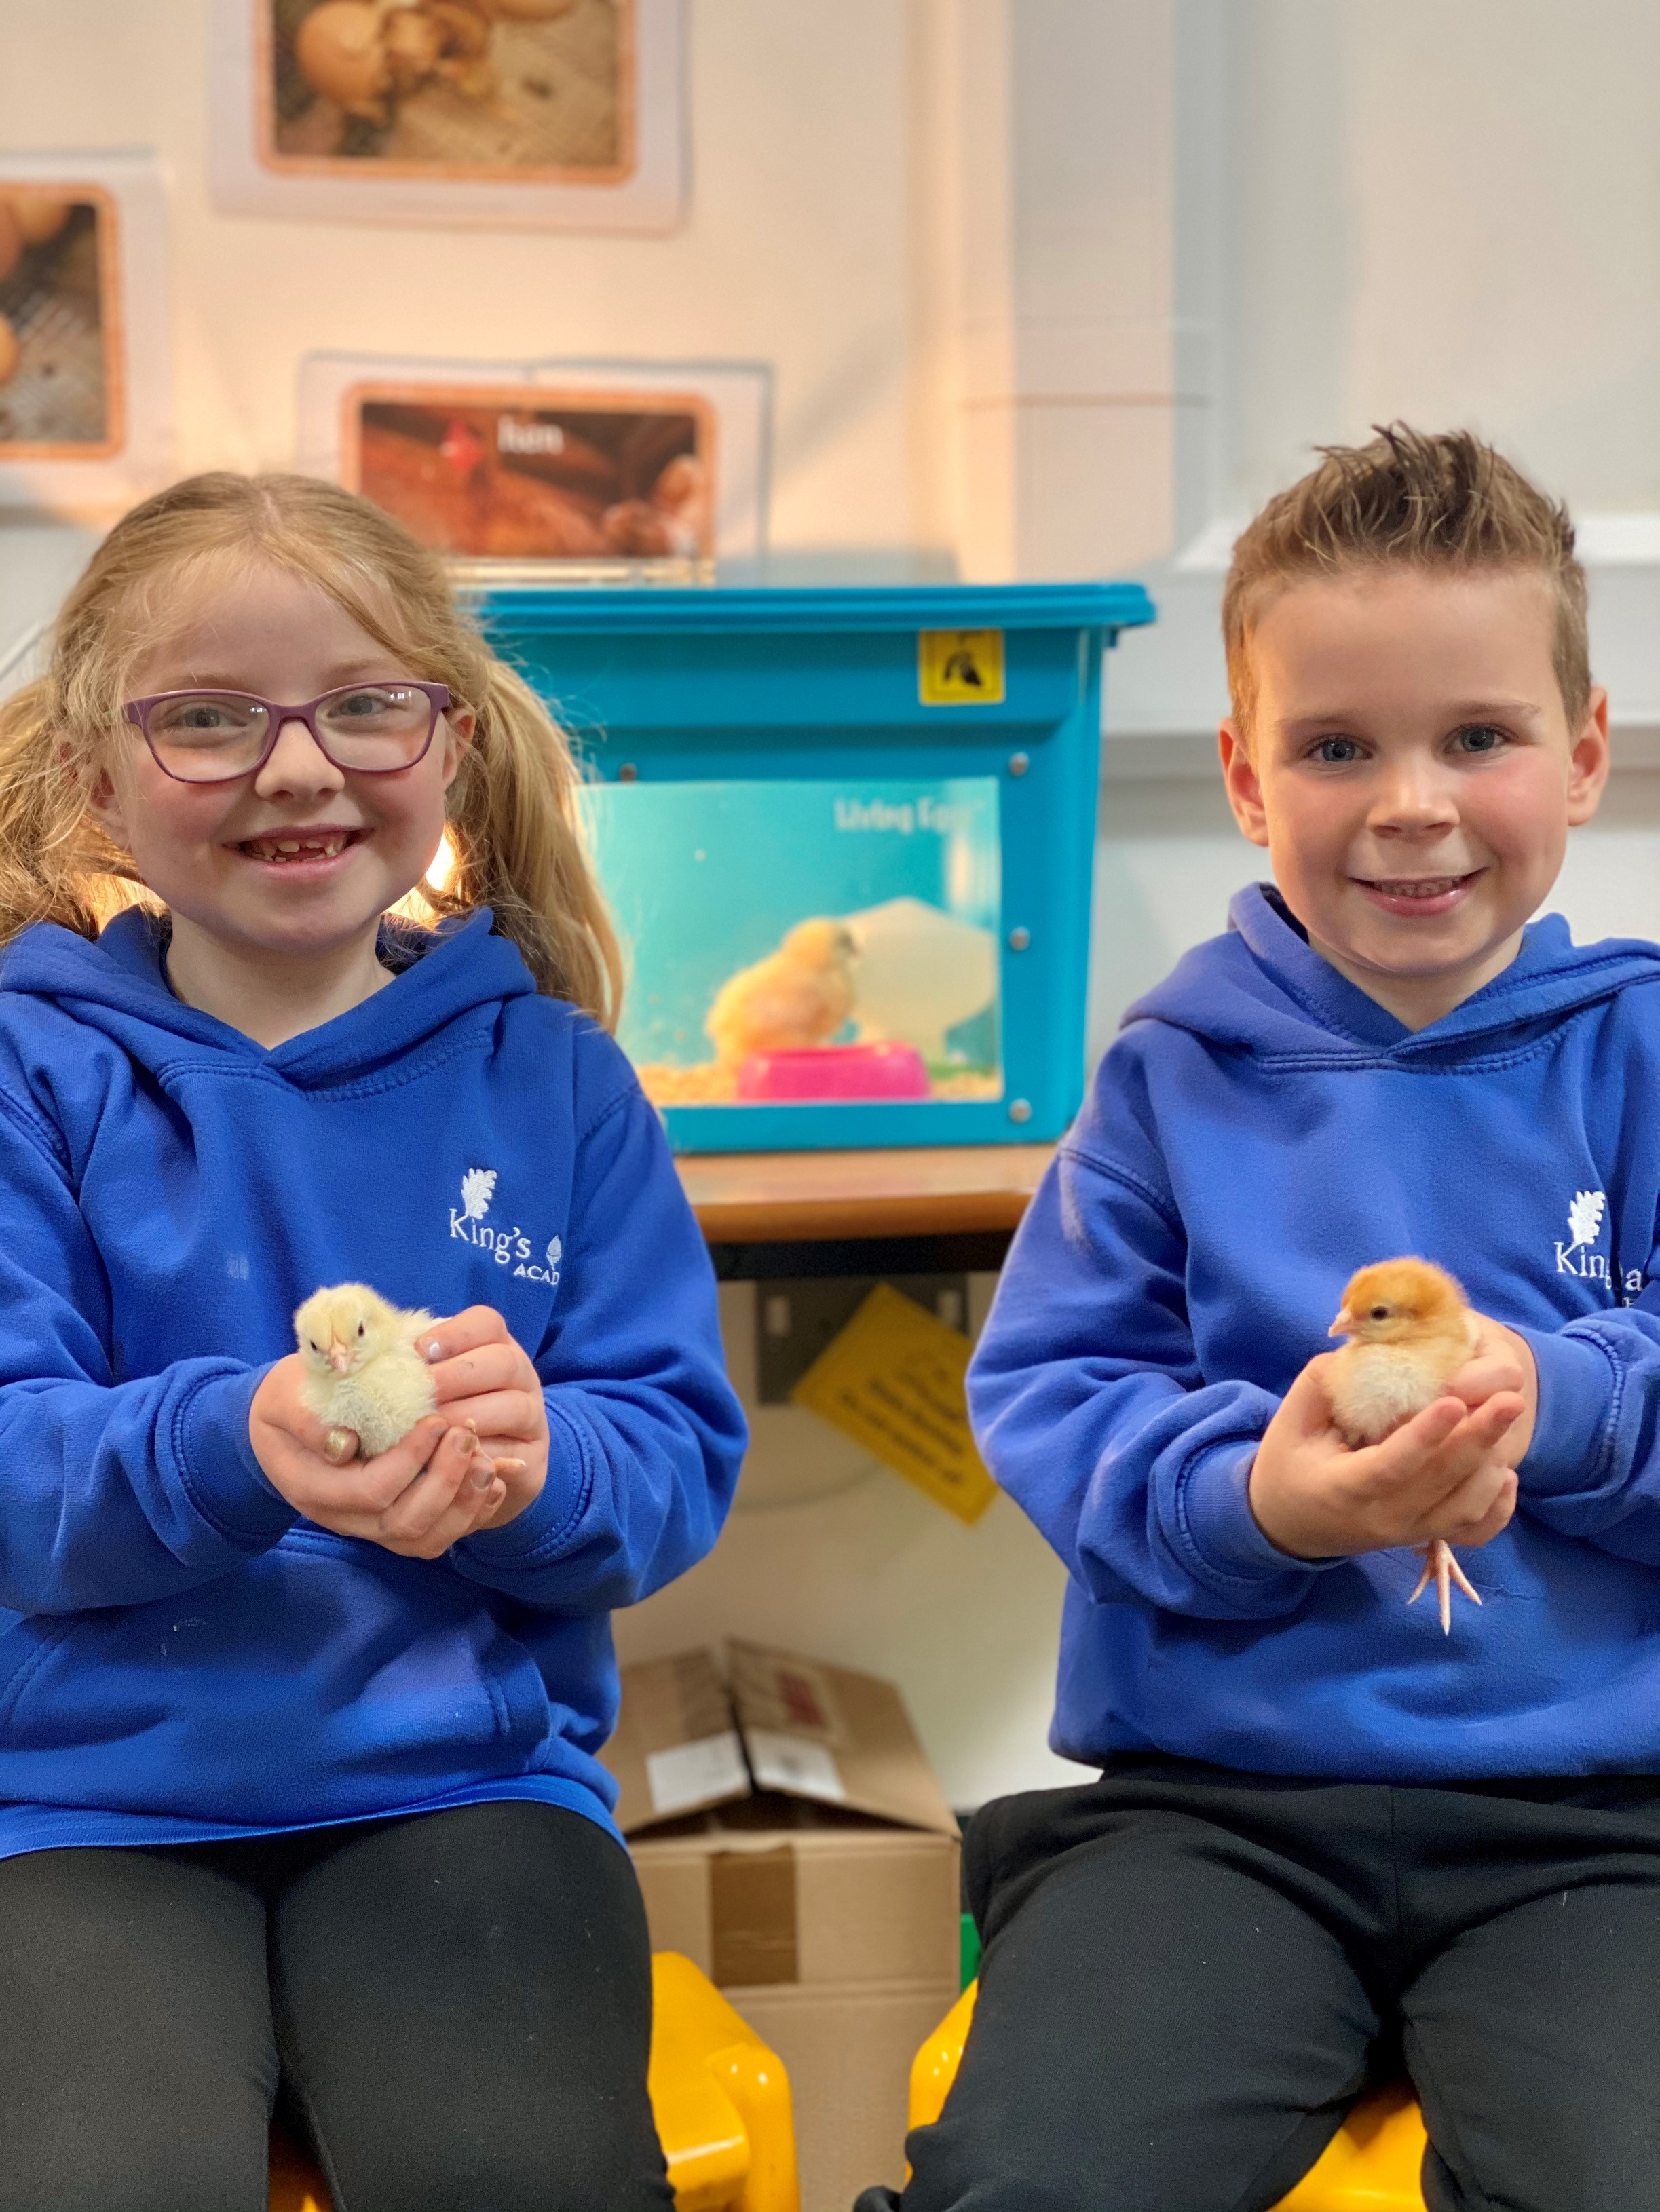 Looking after chicks is a great way to learn science!